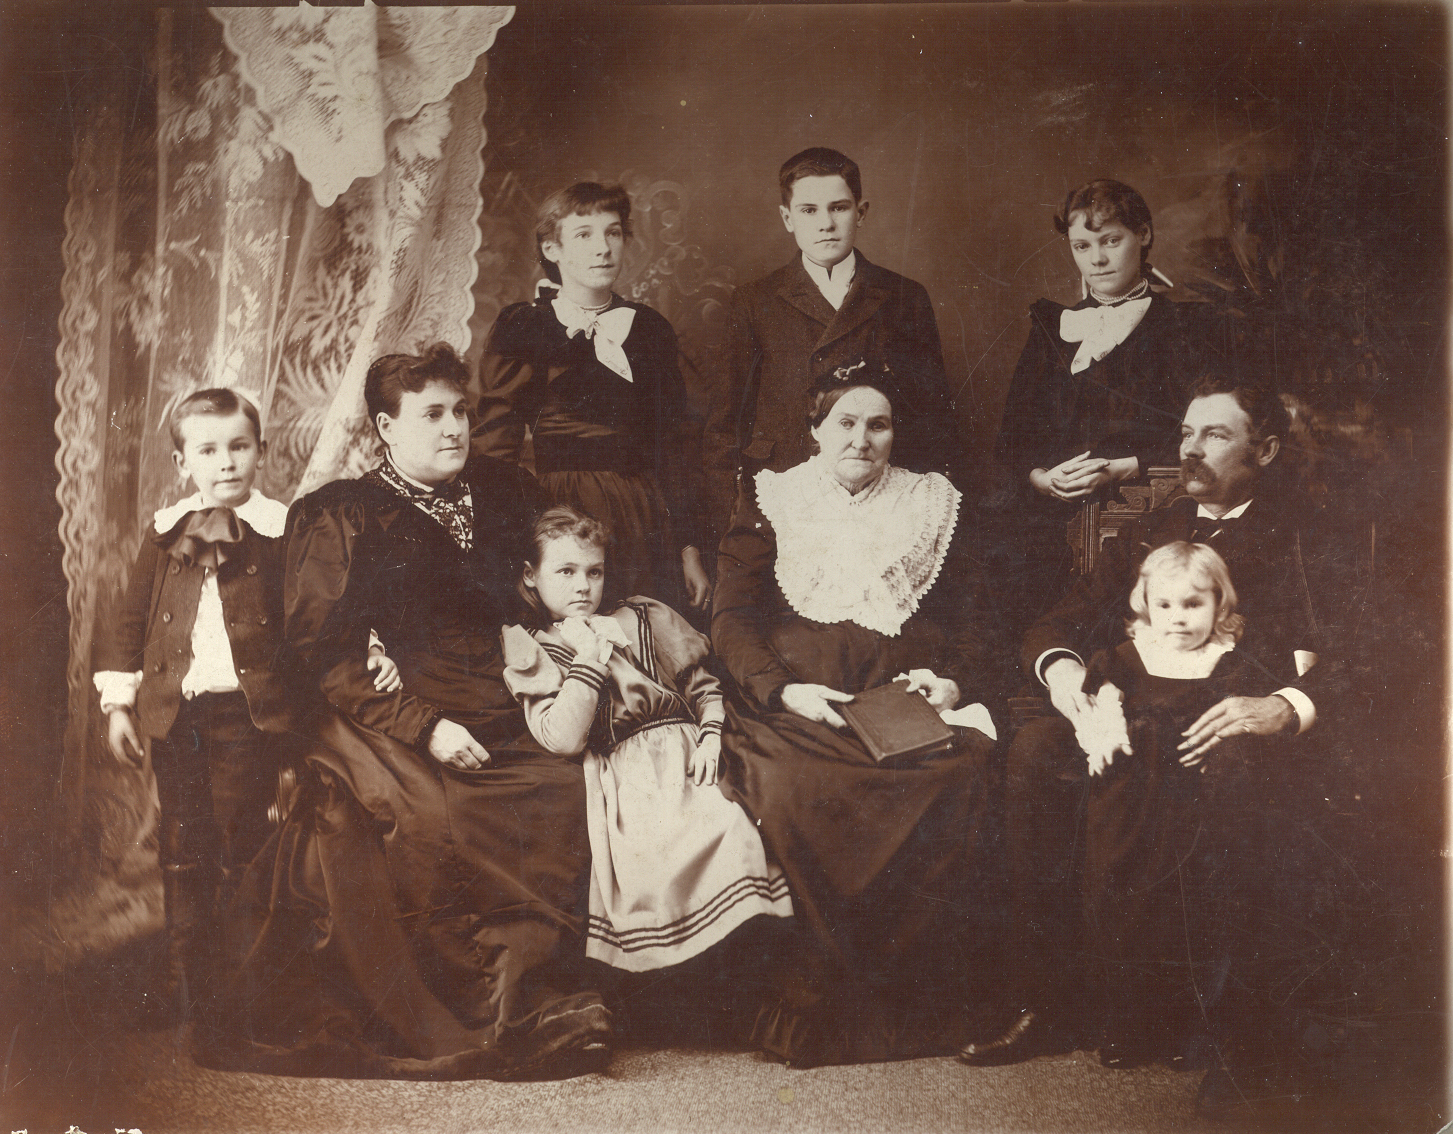 The Smith Family  (Leathem D. Smith shown on left)